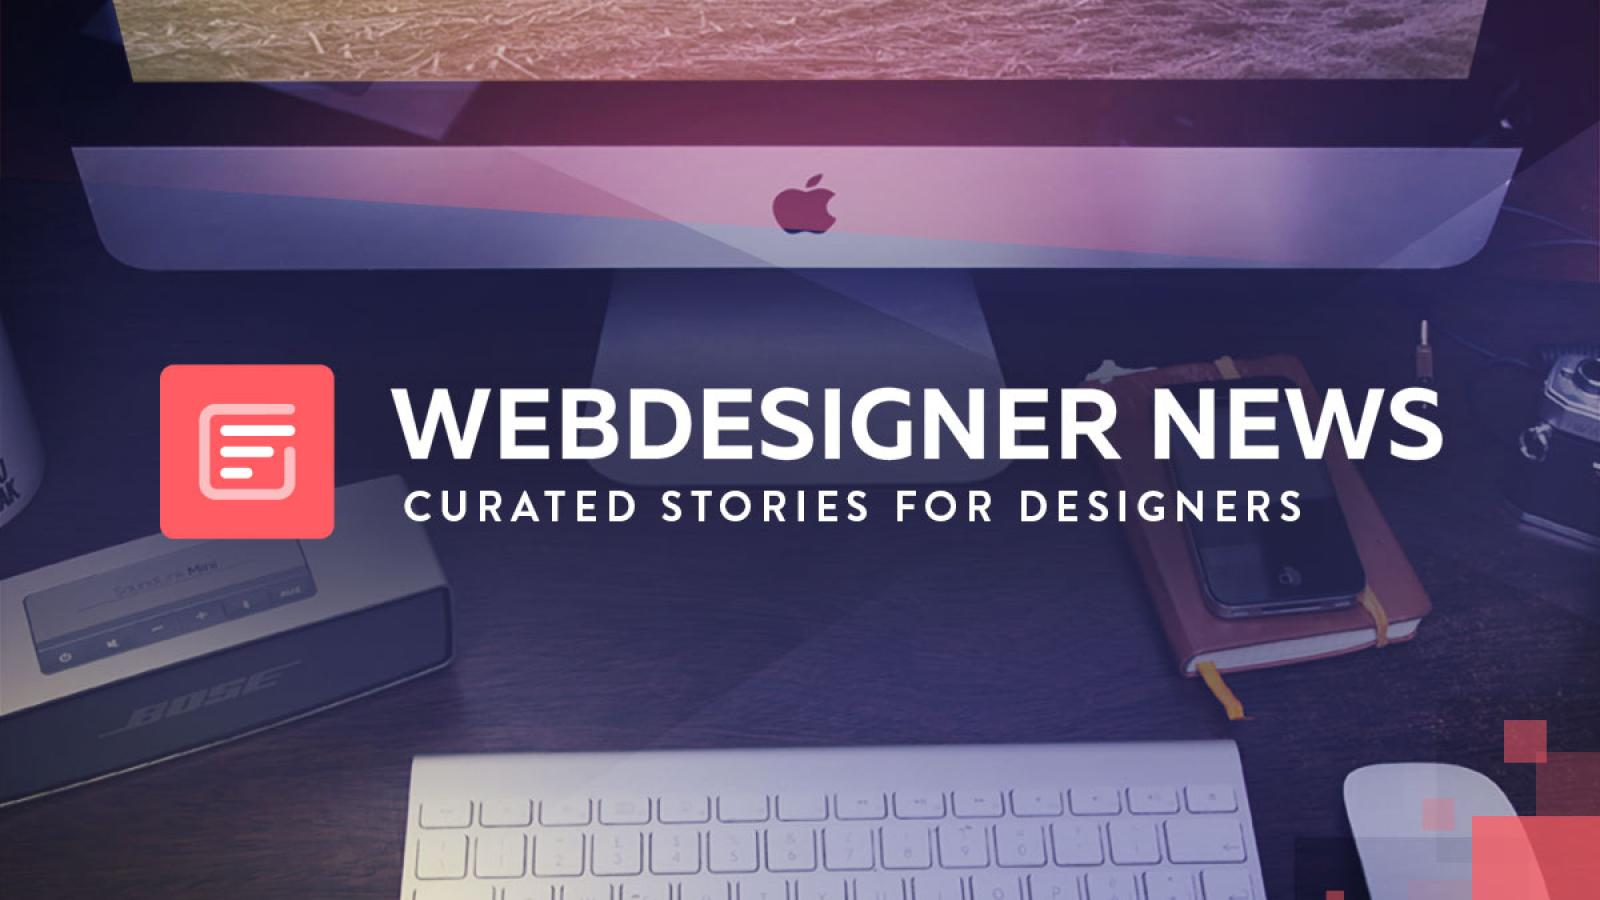 Webdesigner News: Curated Stories for Designers - Sponsored